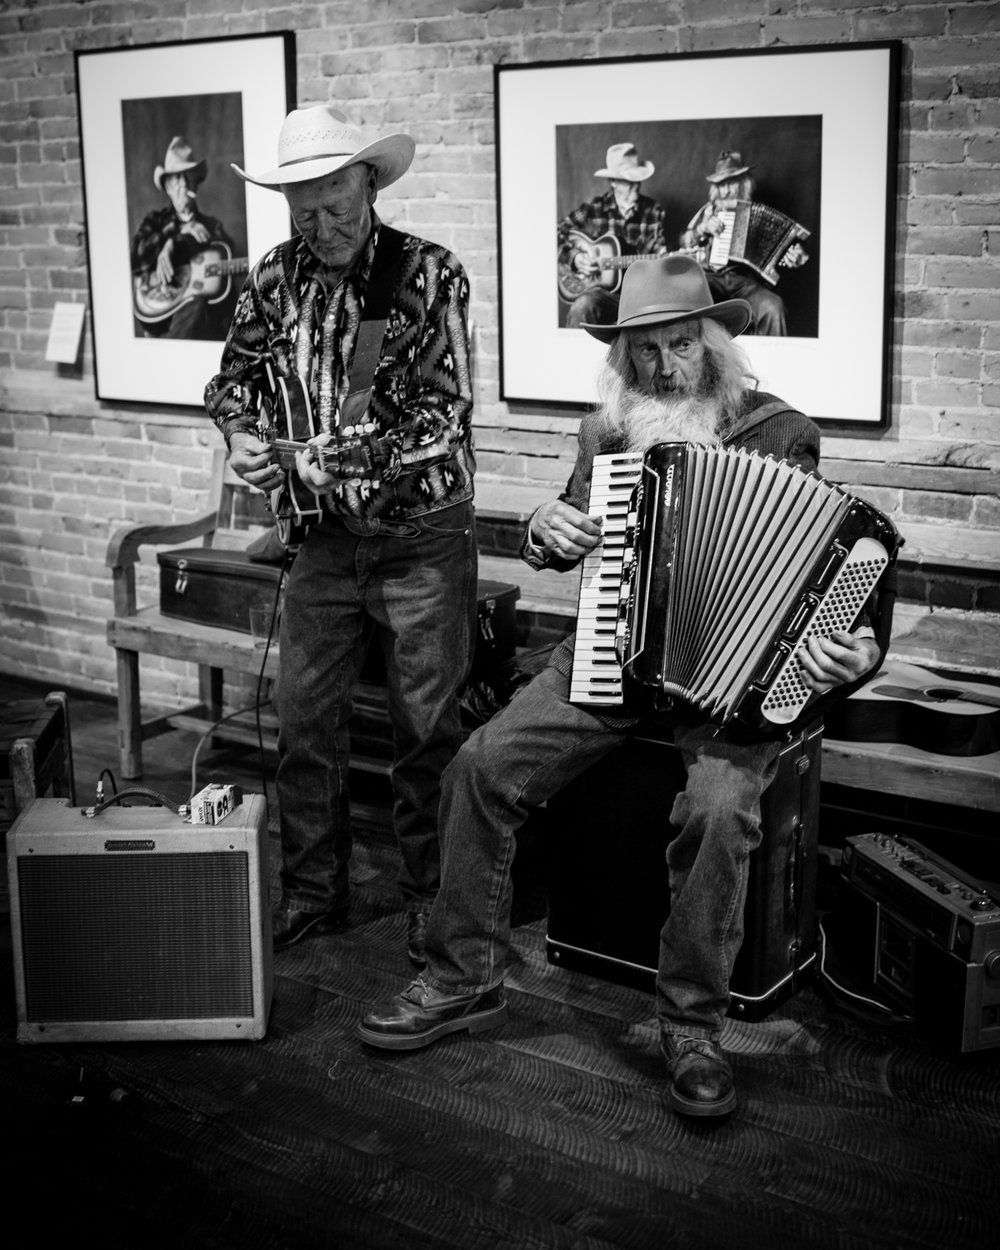 Two of the cowboys featured in the book - John Hoiland on the accordian and Jim Larkin on guitar